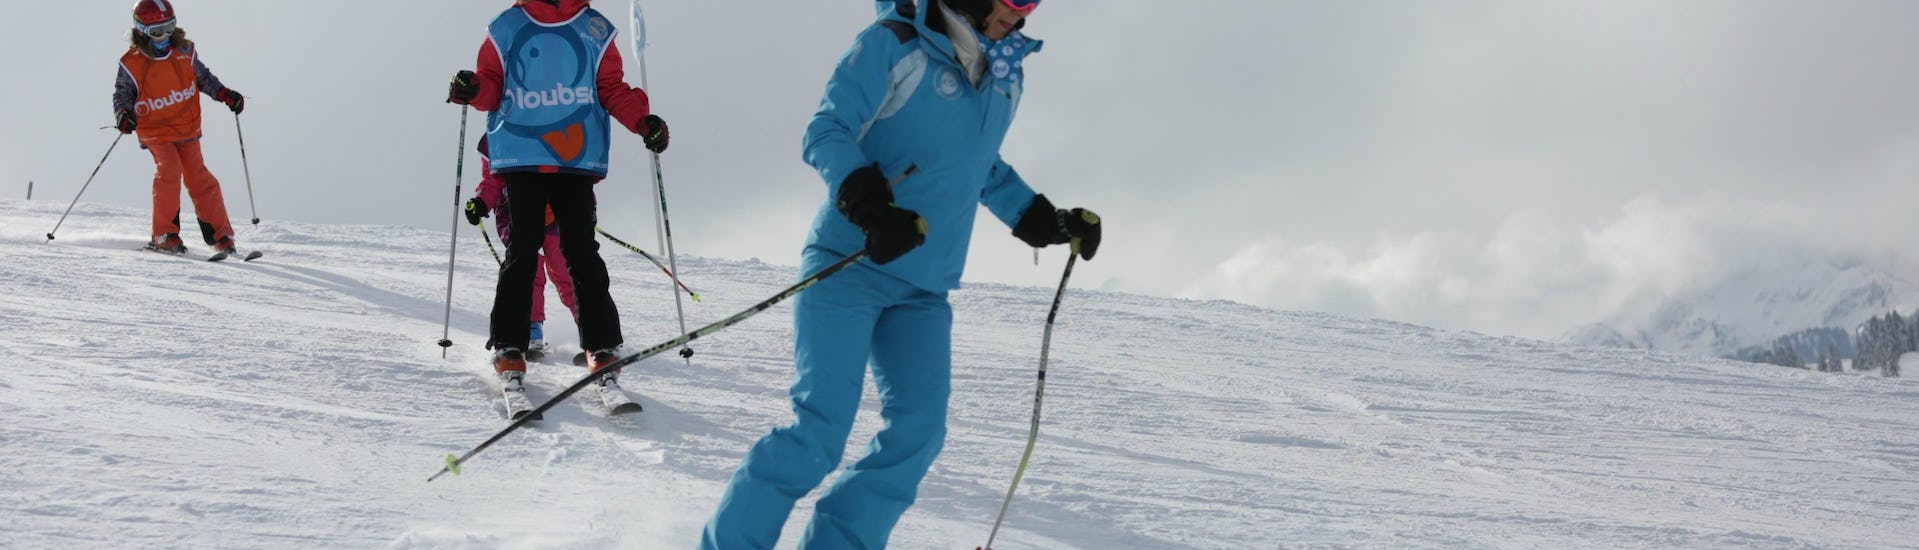 Private Ski Lessons for Kids - Holiday - All Ages